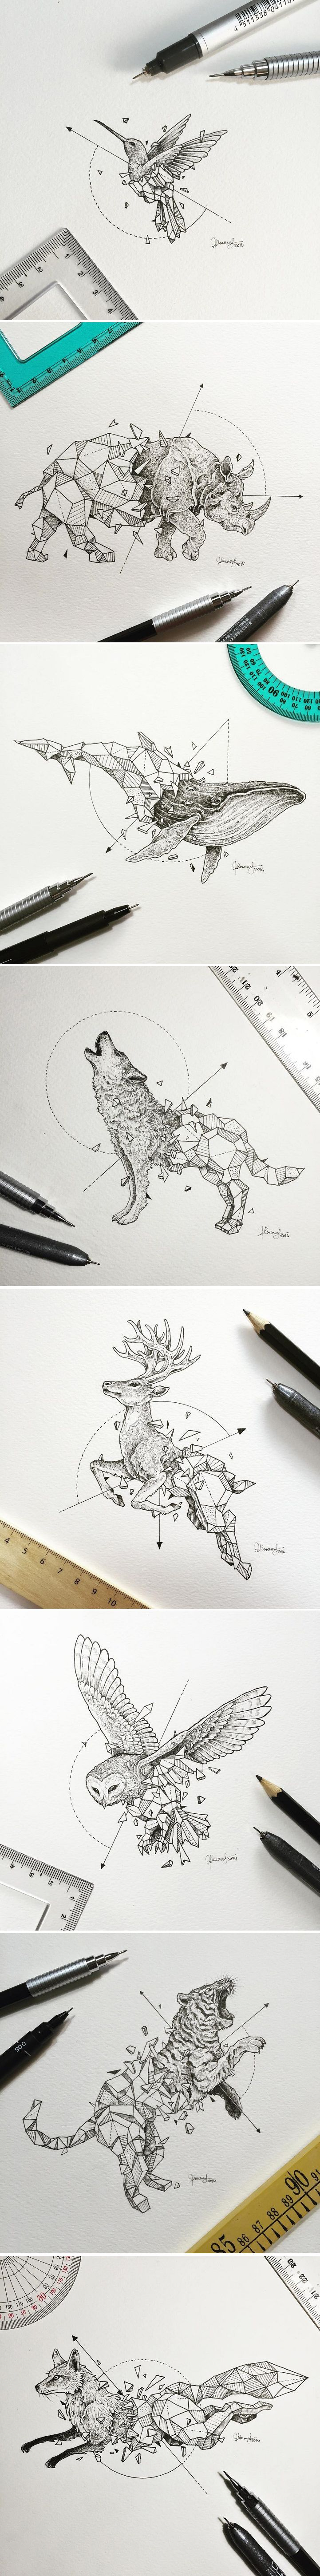 Manila-based illustrator Kerby Rosanes known as Sketchy Stories has created a new series of sketches combing animals with geometric forms. These would make amazing tatts.